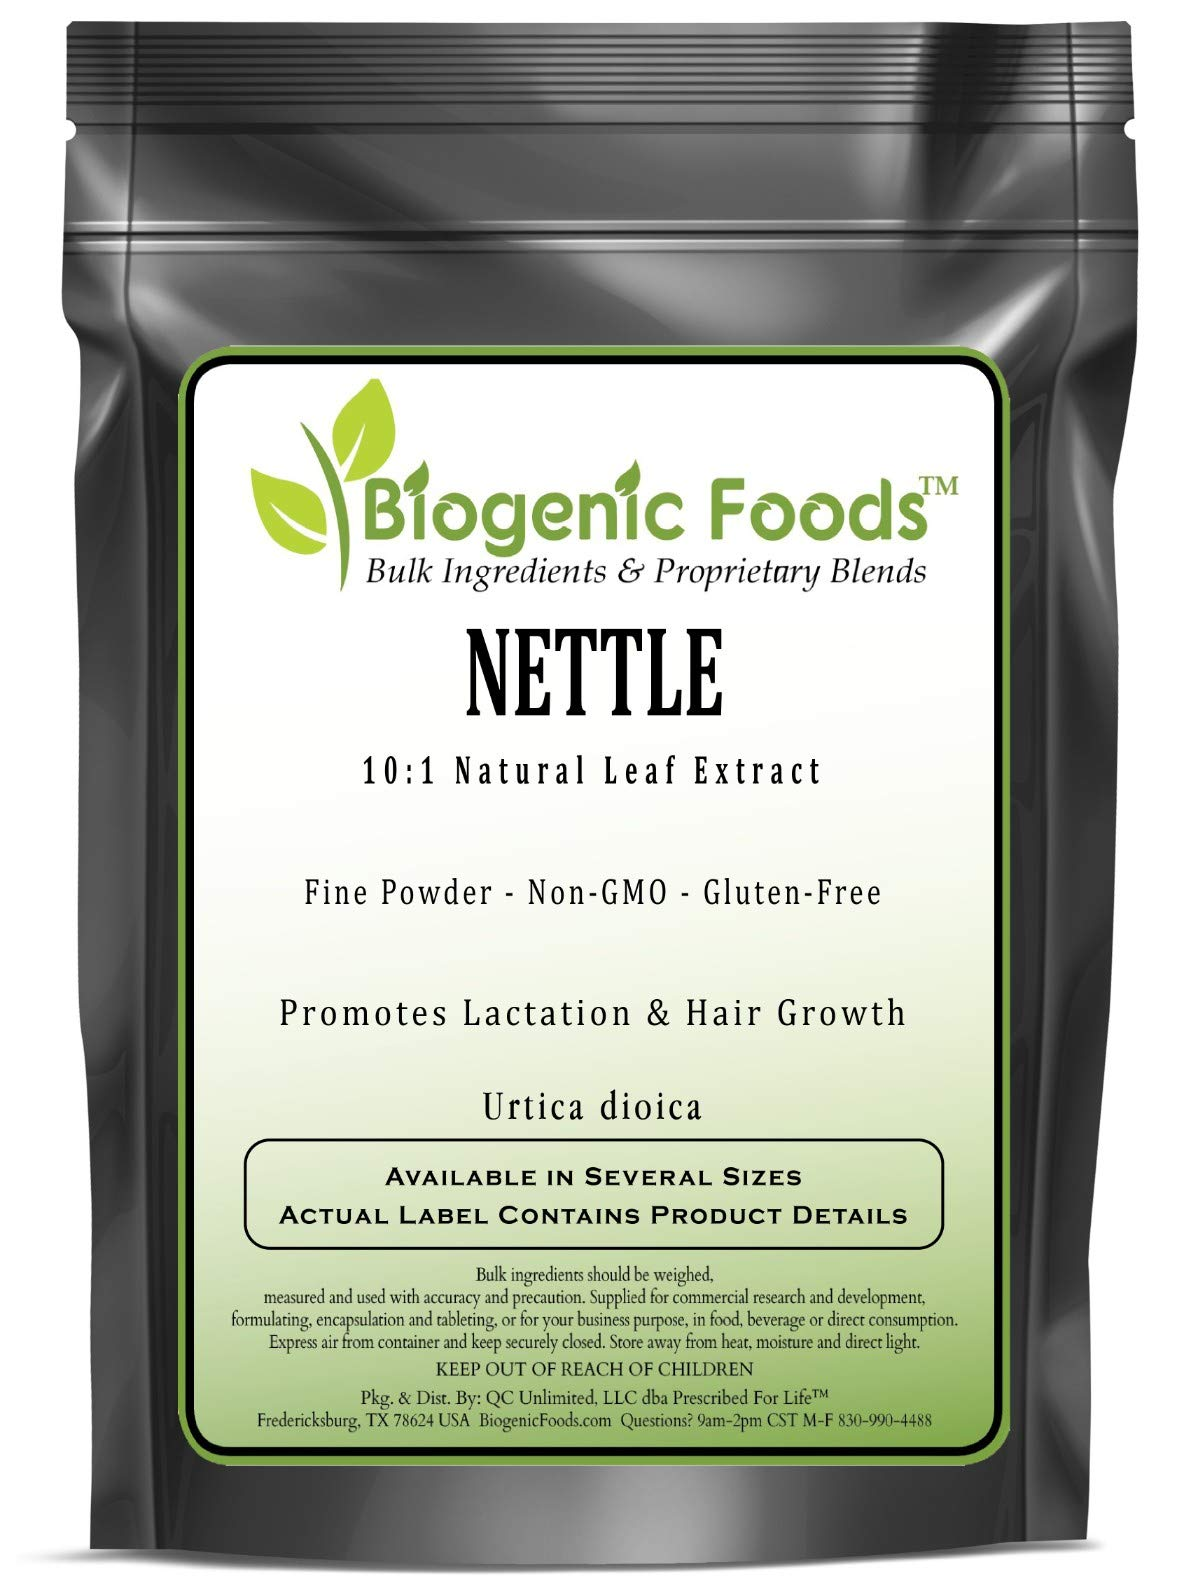 Nettle - 10:1 Natural Leaf Fine Powder Extract (Urtica dioica), 10 kg